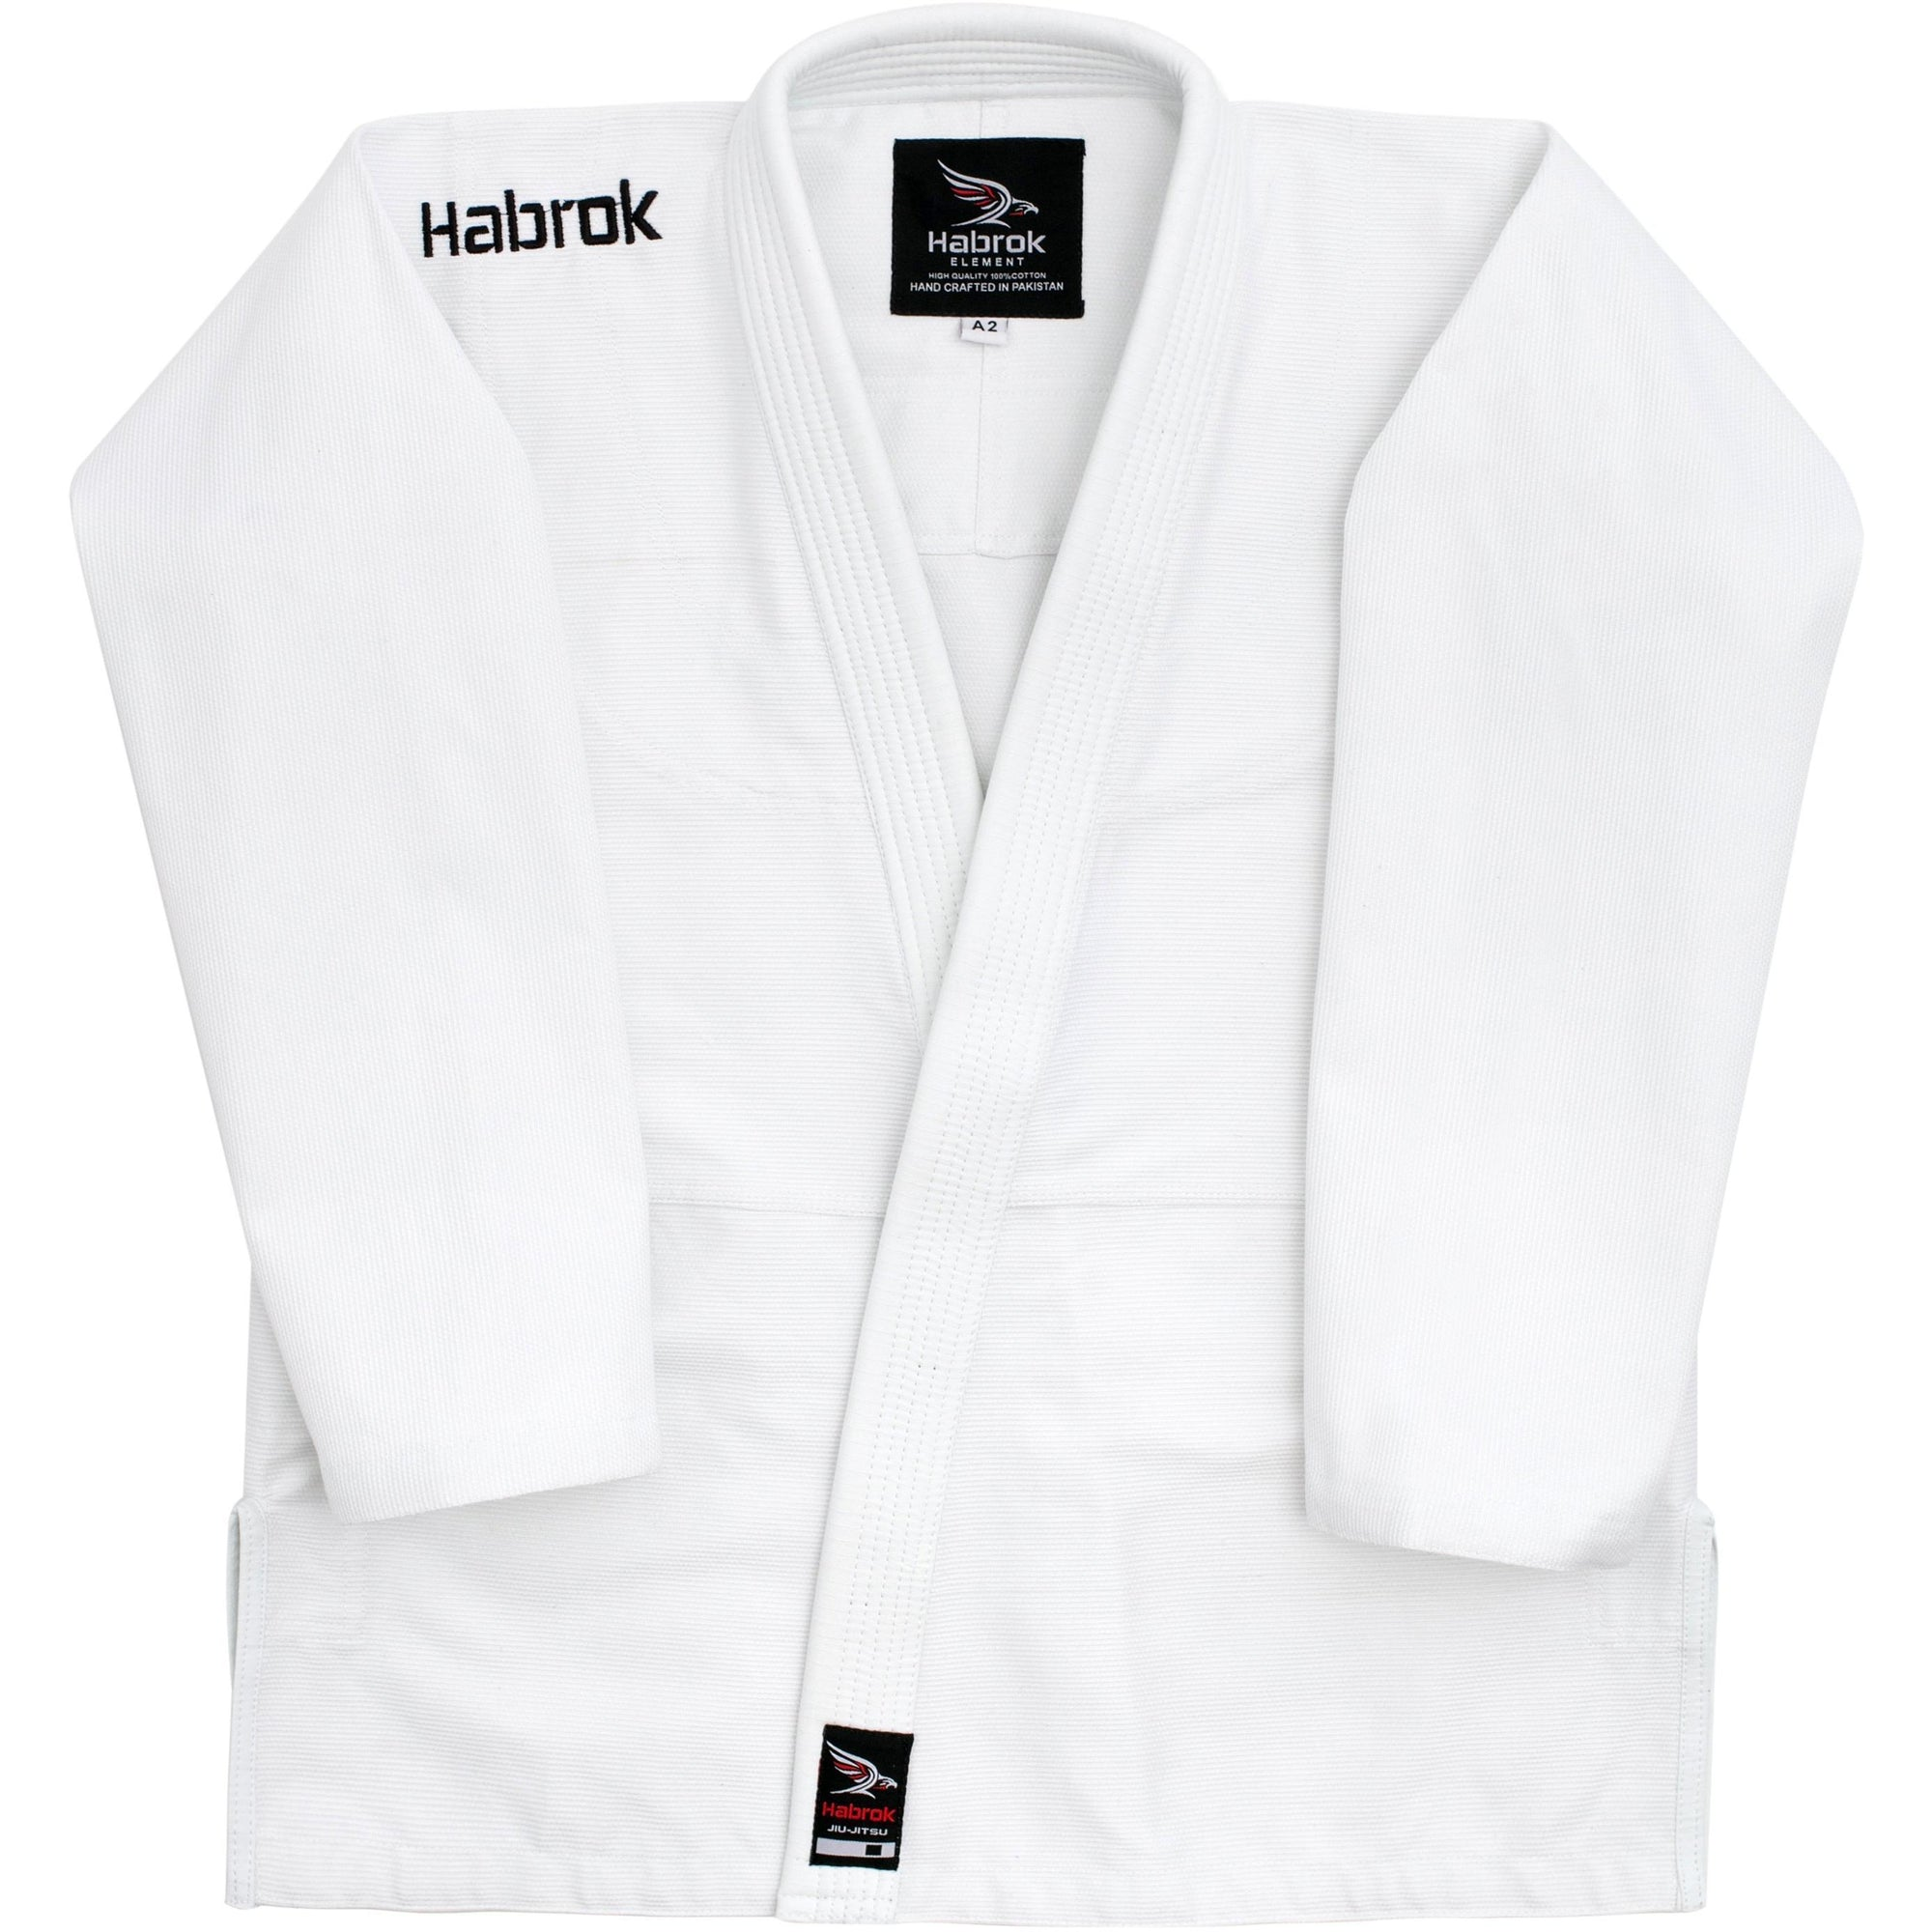 Habrok Jiu Jitsu Gi F0 / WHITE Element Gi | Women 681565432903